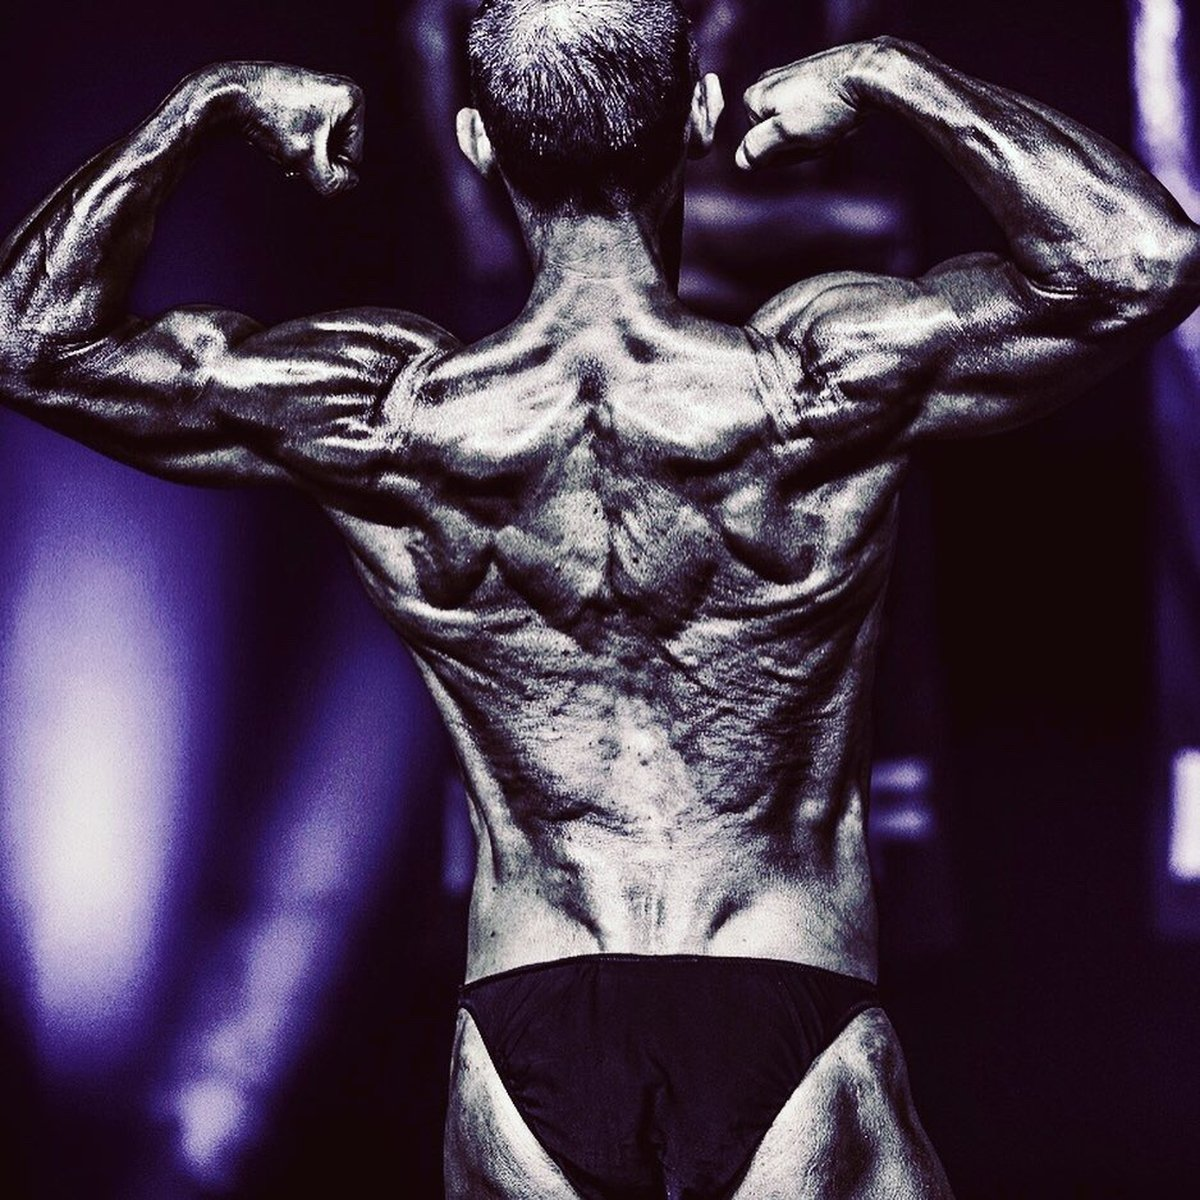 image of image: 27 of 32Tim poses at the 2019 BNBF Central Contest on his way to collect 3<sup>rd</sup> spot in the Over 50s category.